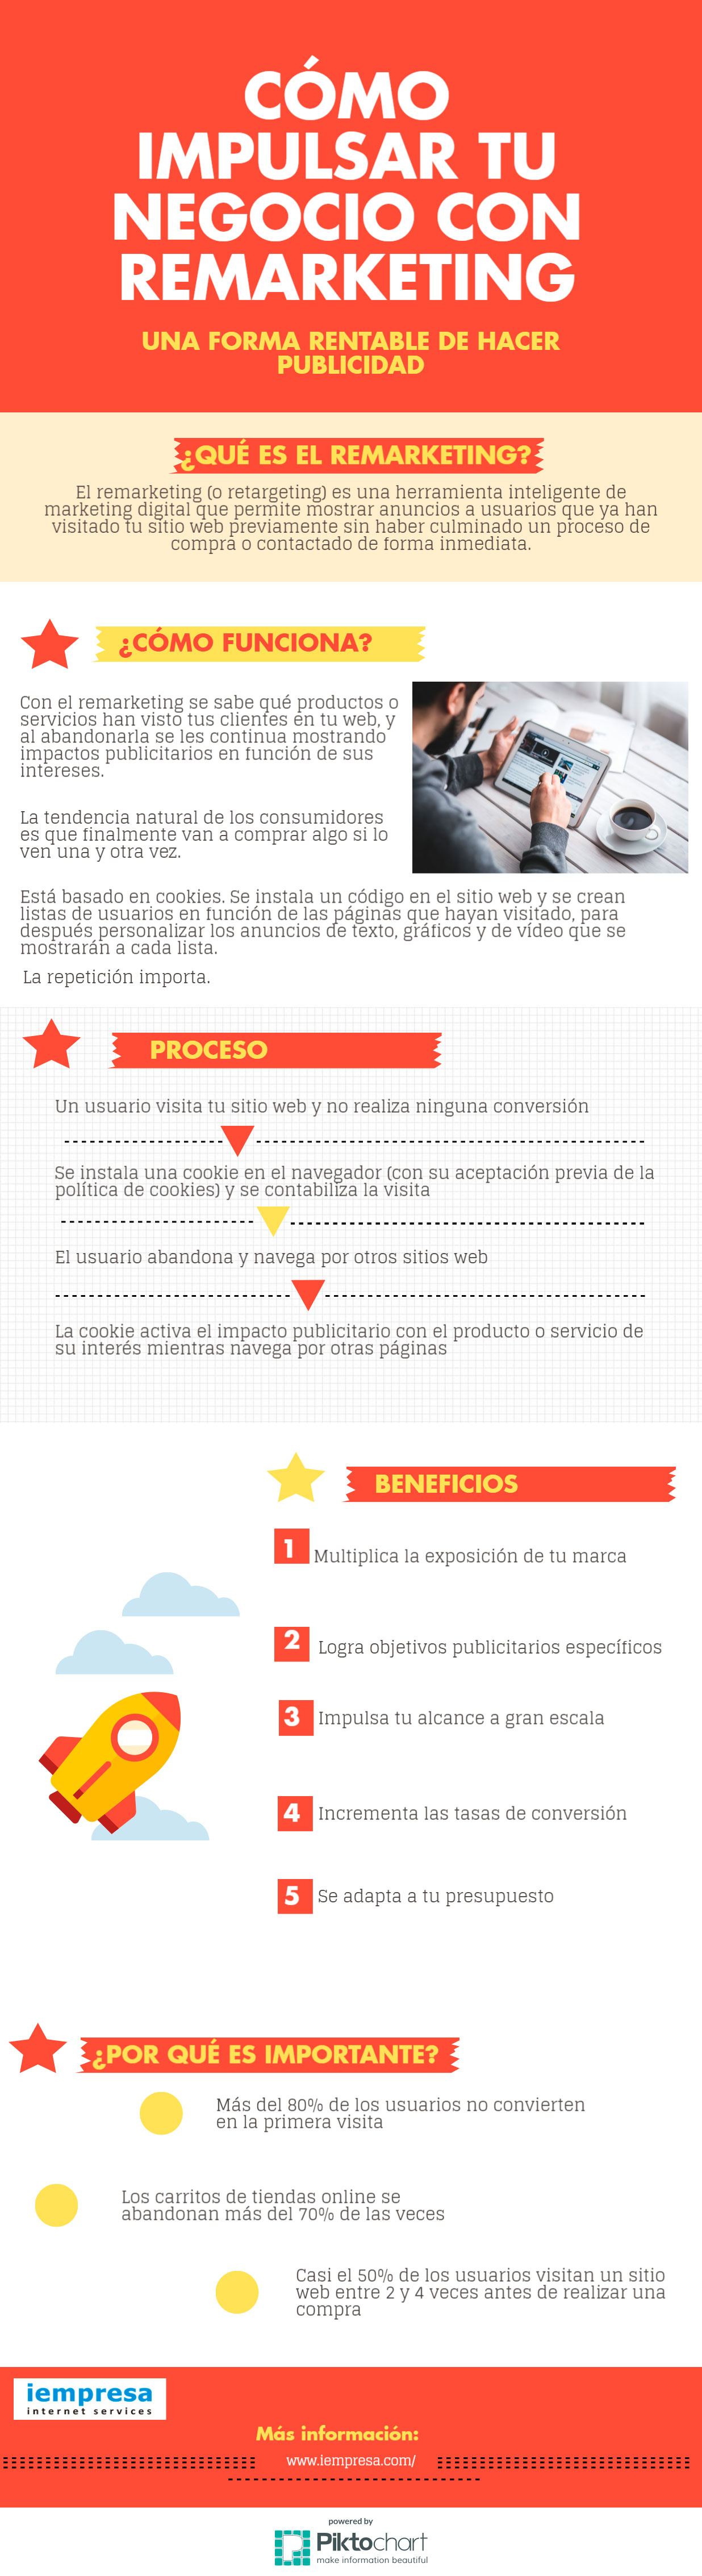 Infografia remarketing